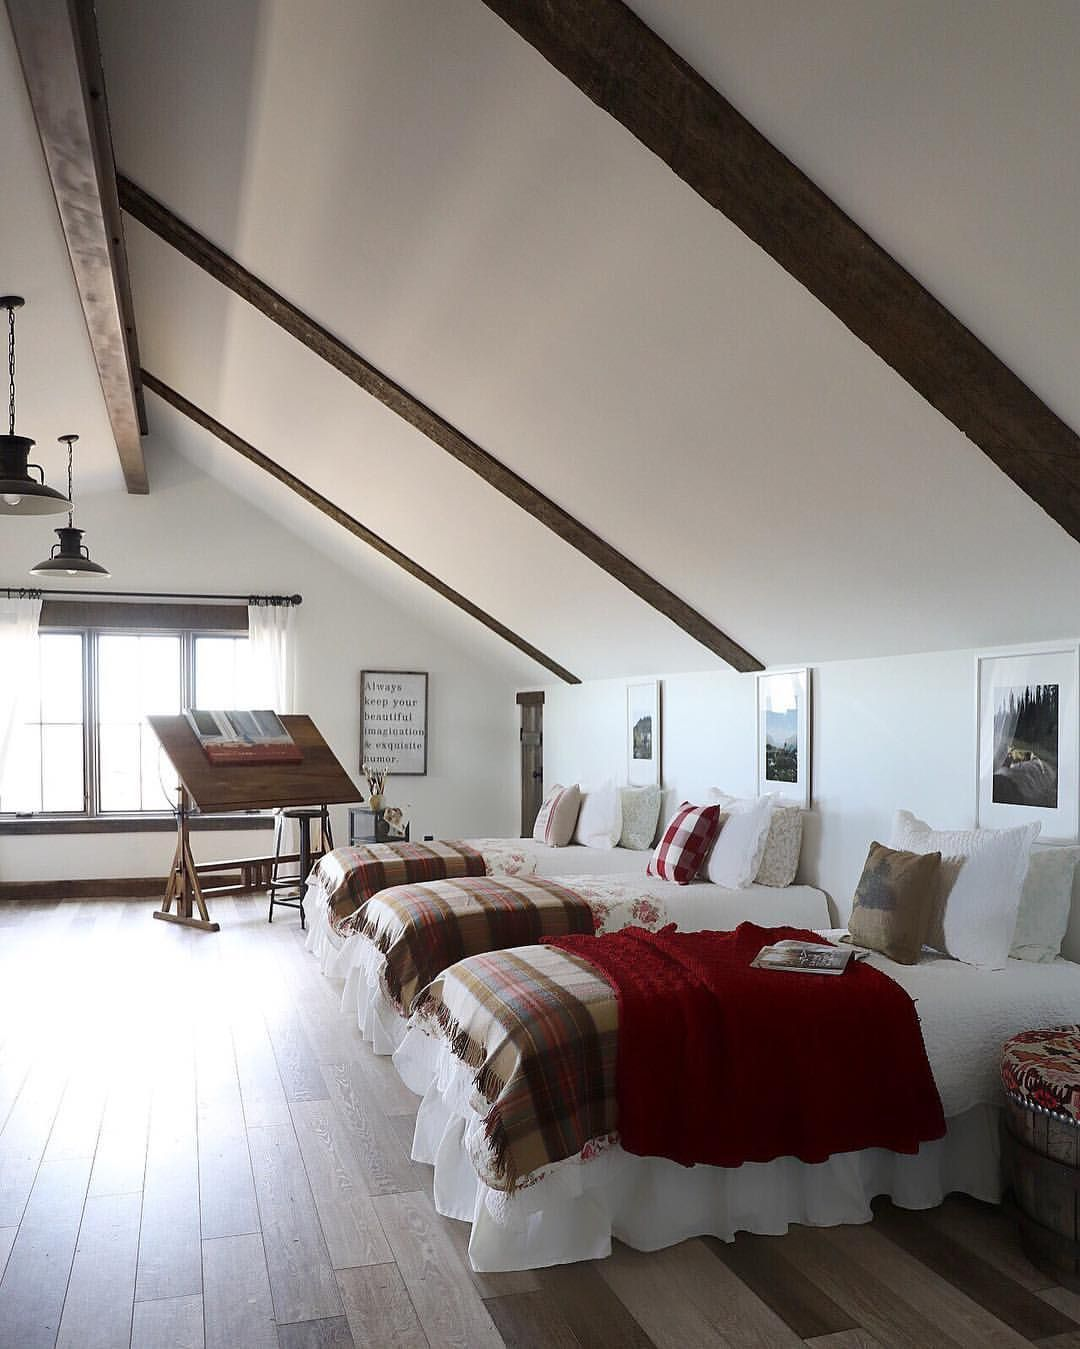 Crazy Ideas Can Change Your Life Finished Attic Design E For S Modern Floors Entrance Foyers Bathroom Toilet